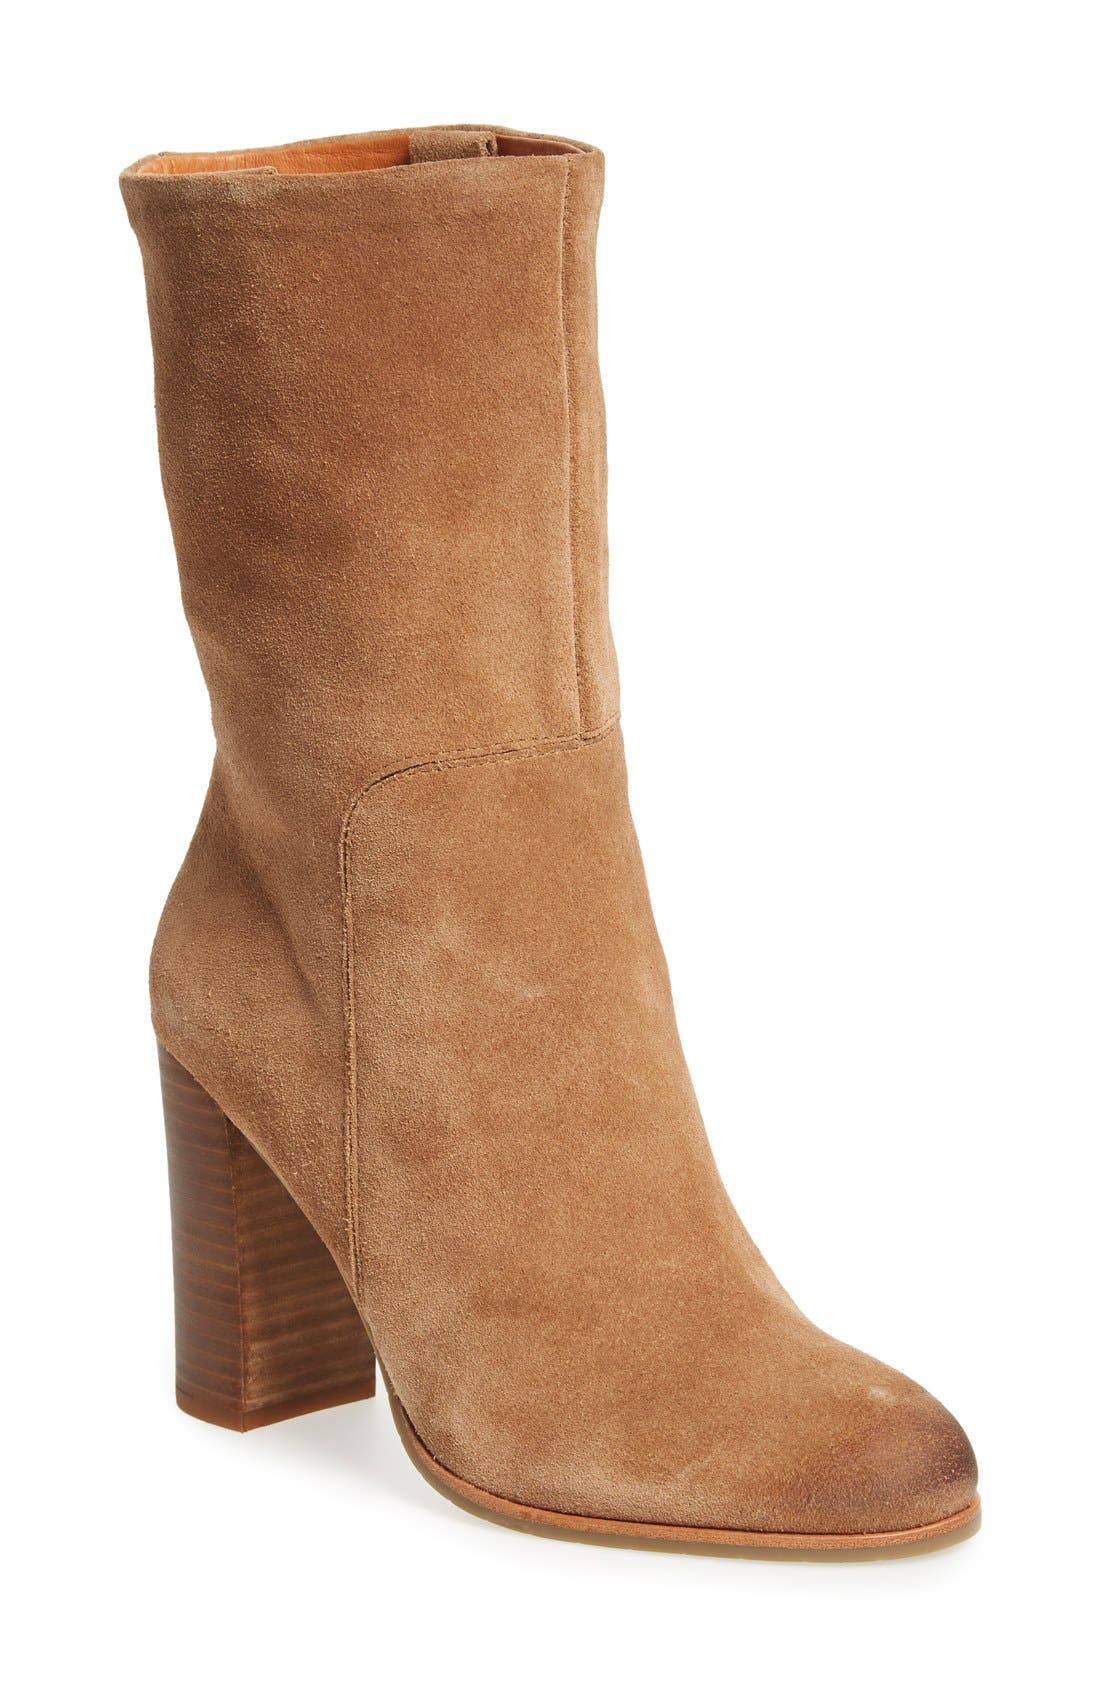 'Jenni' Round Toe Boot,                             Main thumbnail 1, color,                             Desert Suede